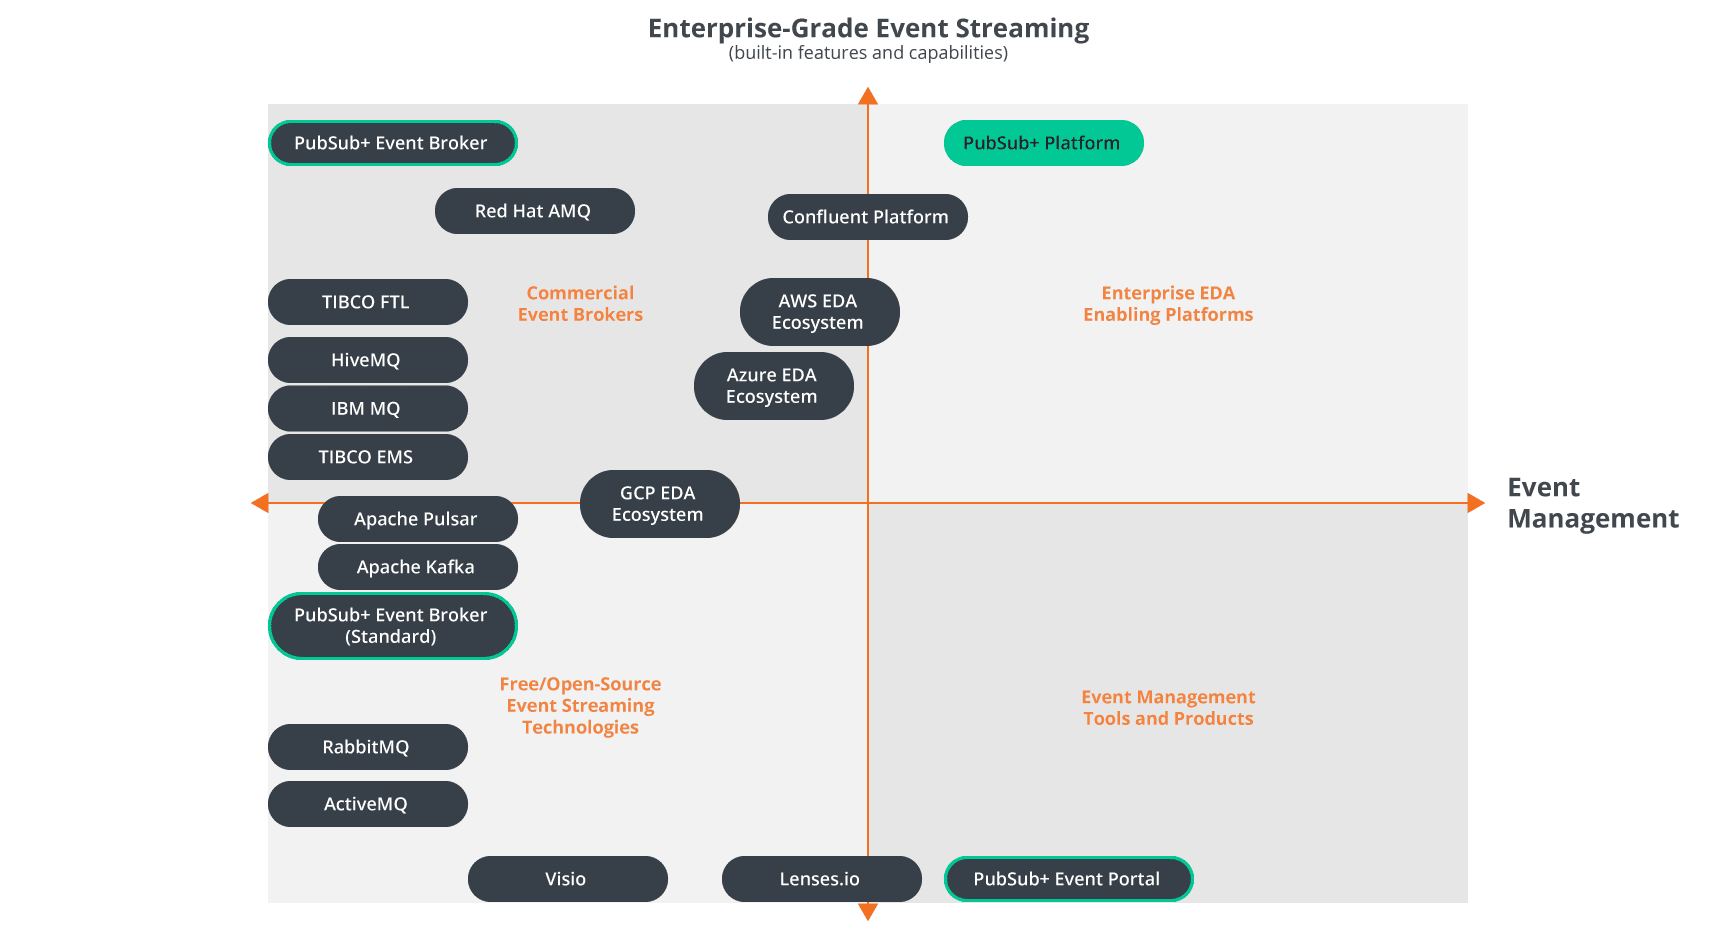 comparing enterprise grade event streaming platforms and technologies